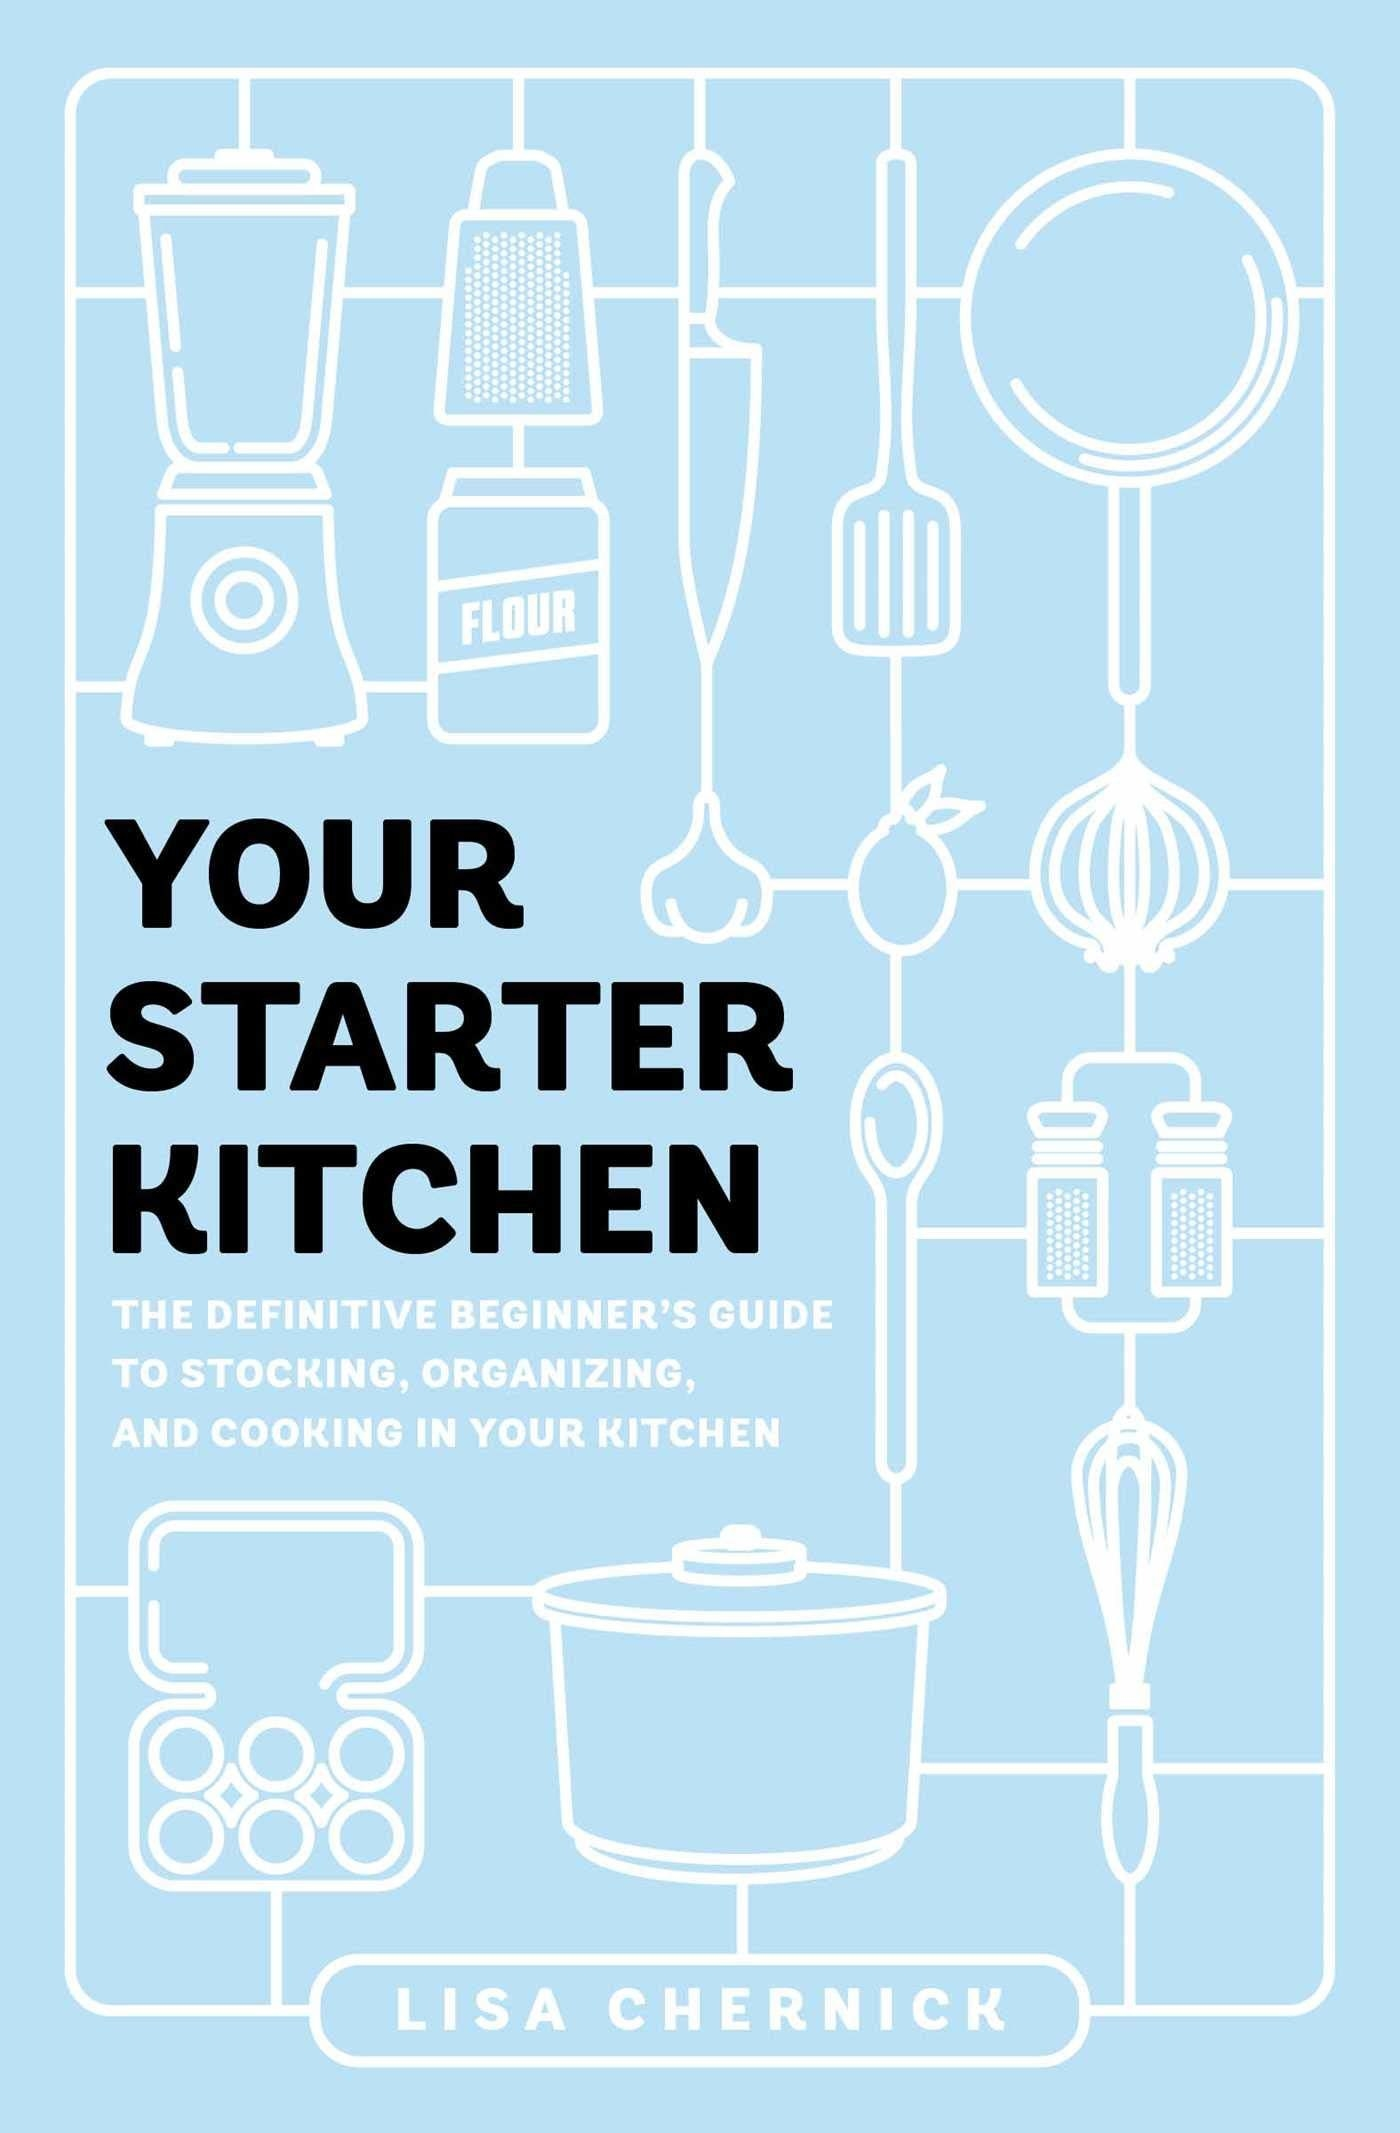 The cover of Your Starter Kitchen: The Definitive Beginner's Guide to Stocking, Organizing, and Cooking in Your Kitchen